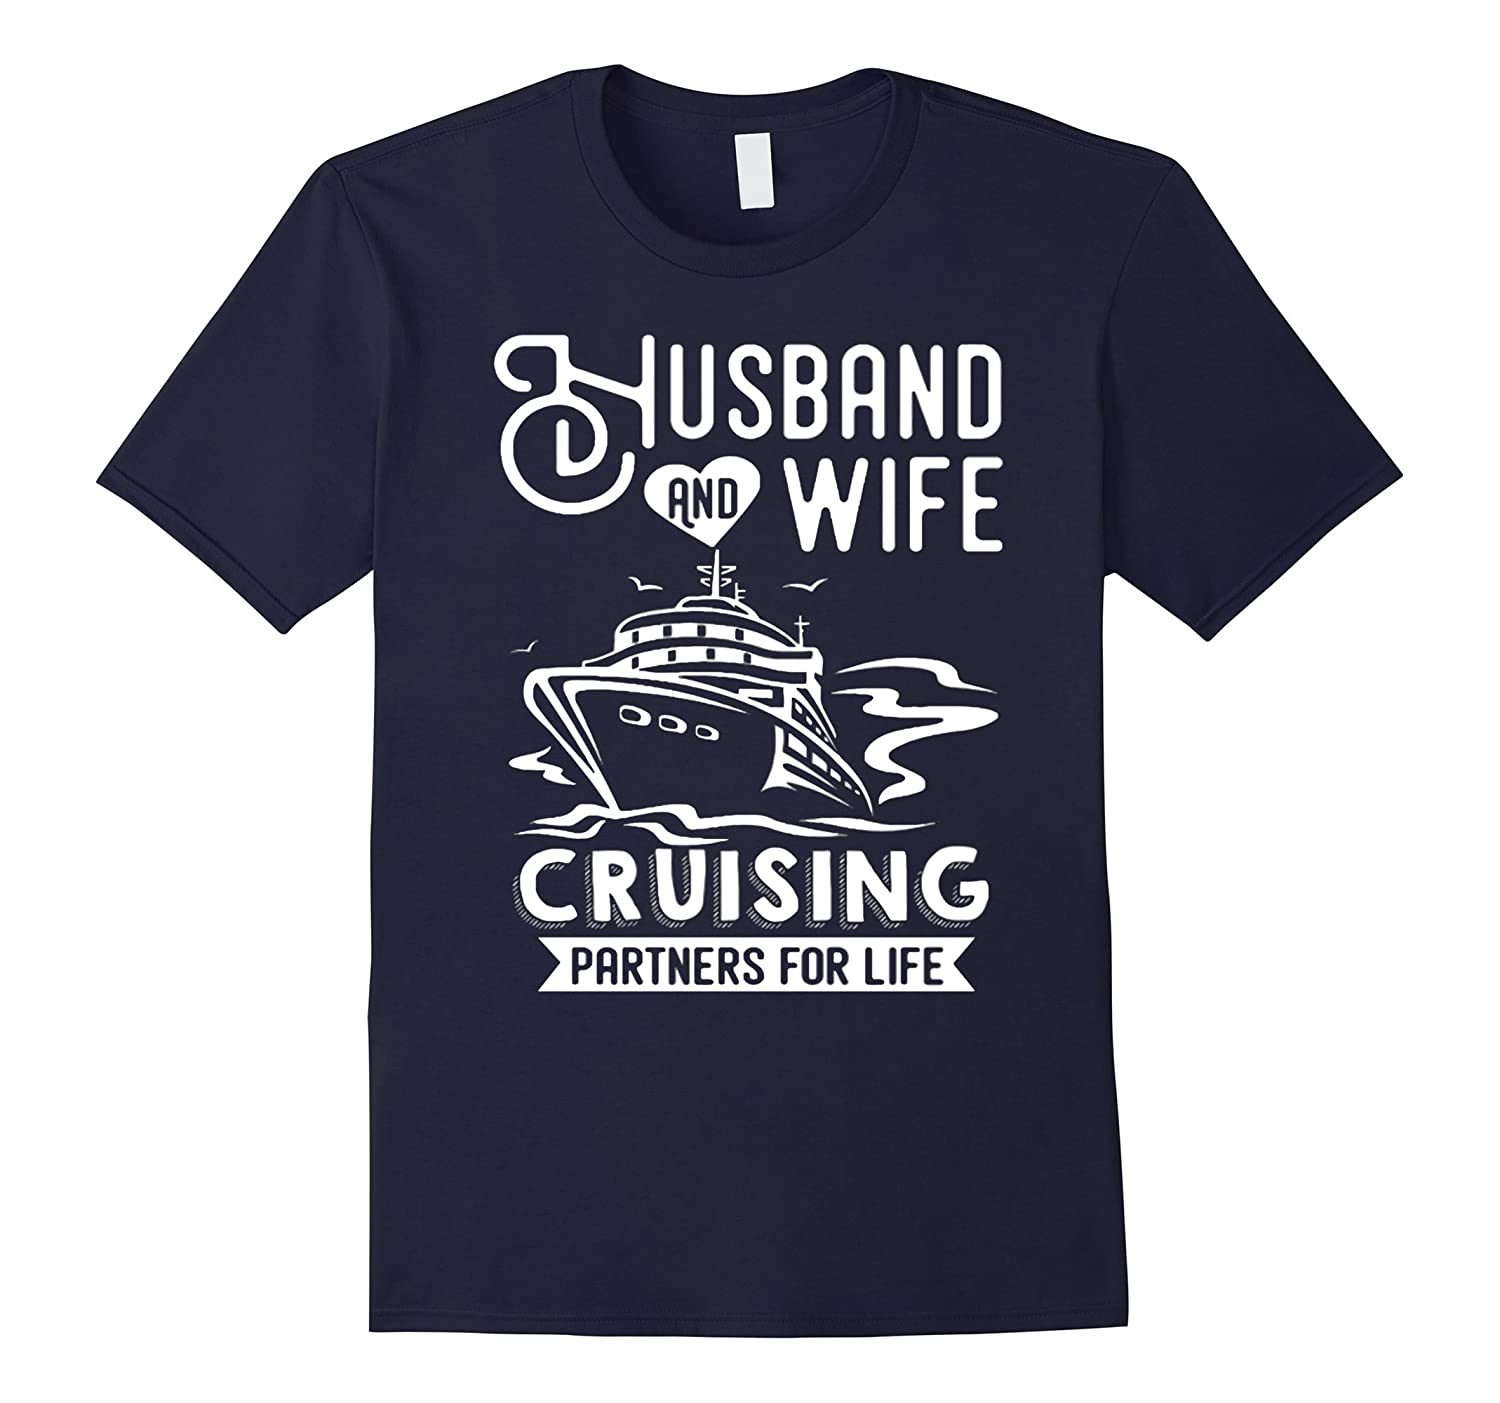 HUSBAND AND WIFE CRUISING PARTNERS FOR LIFE-Vaci